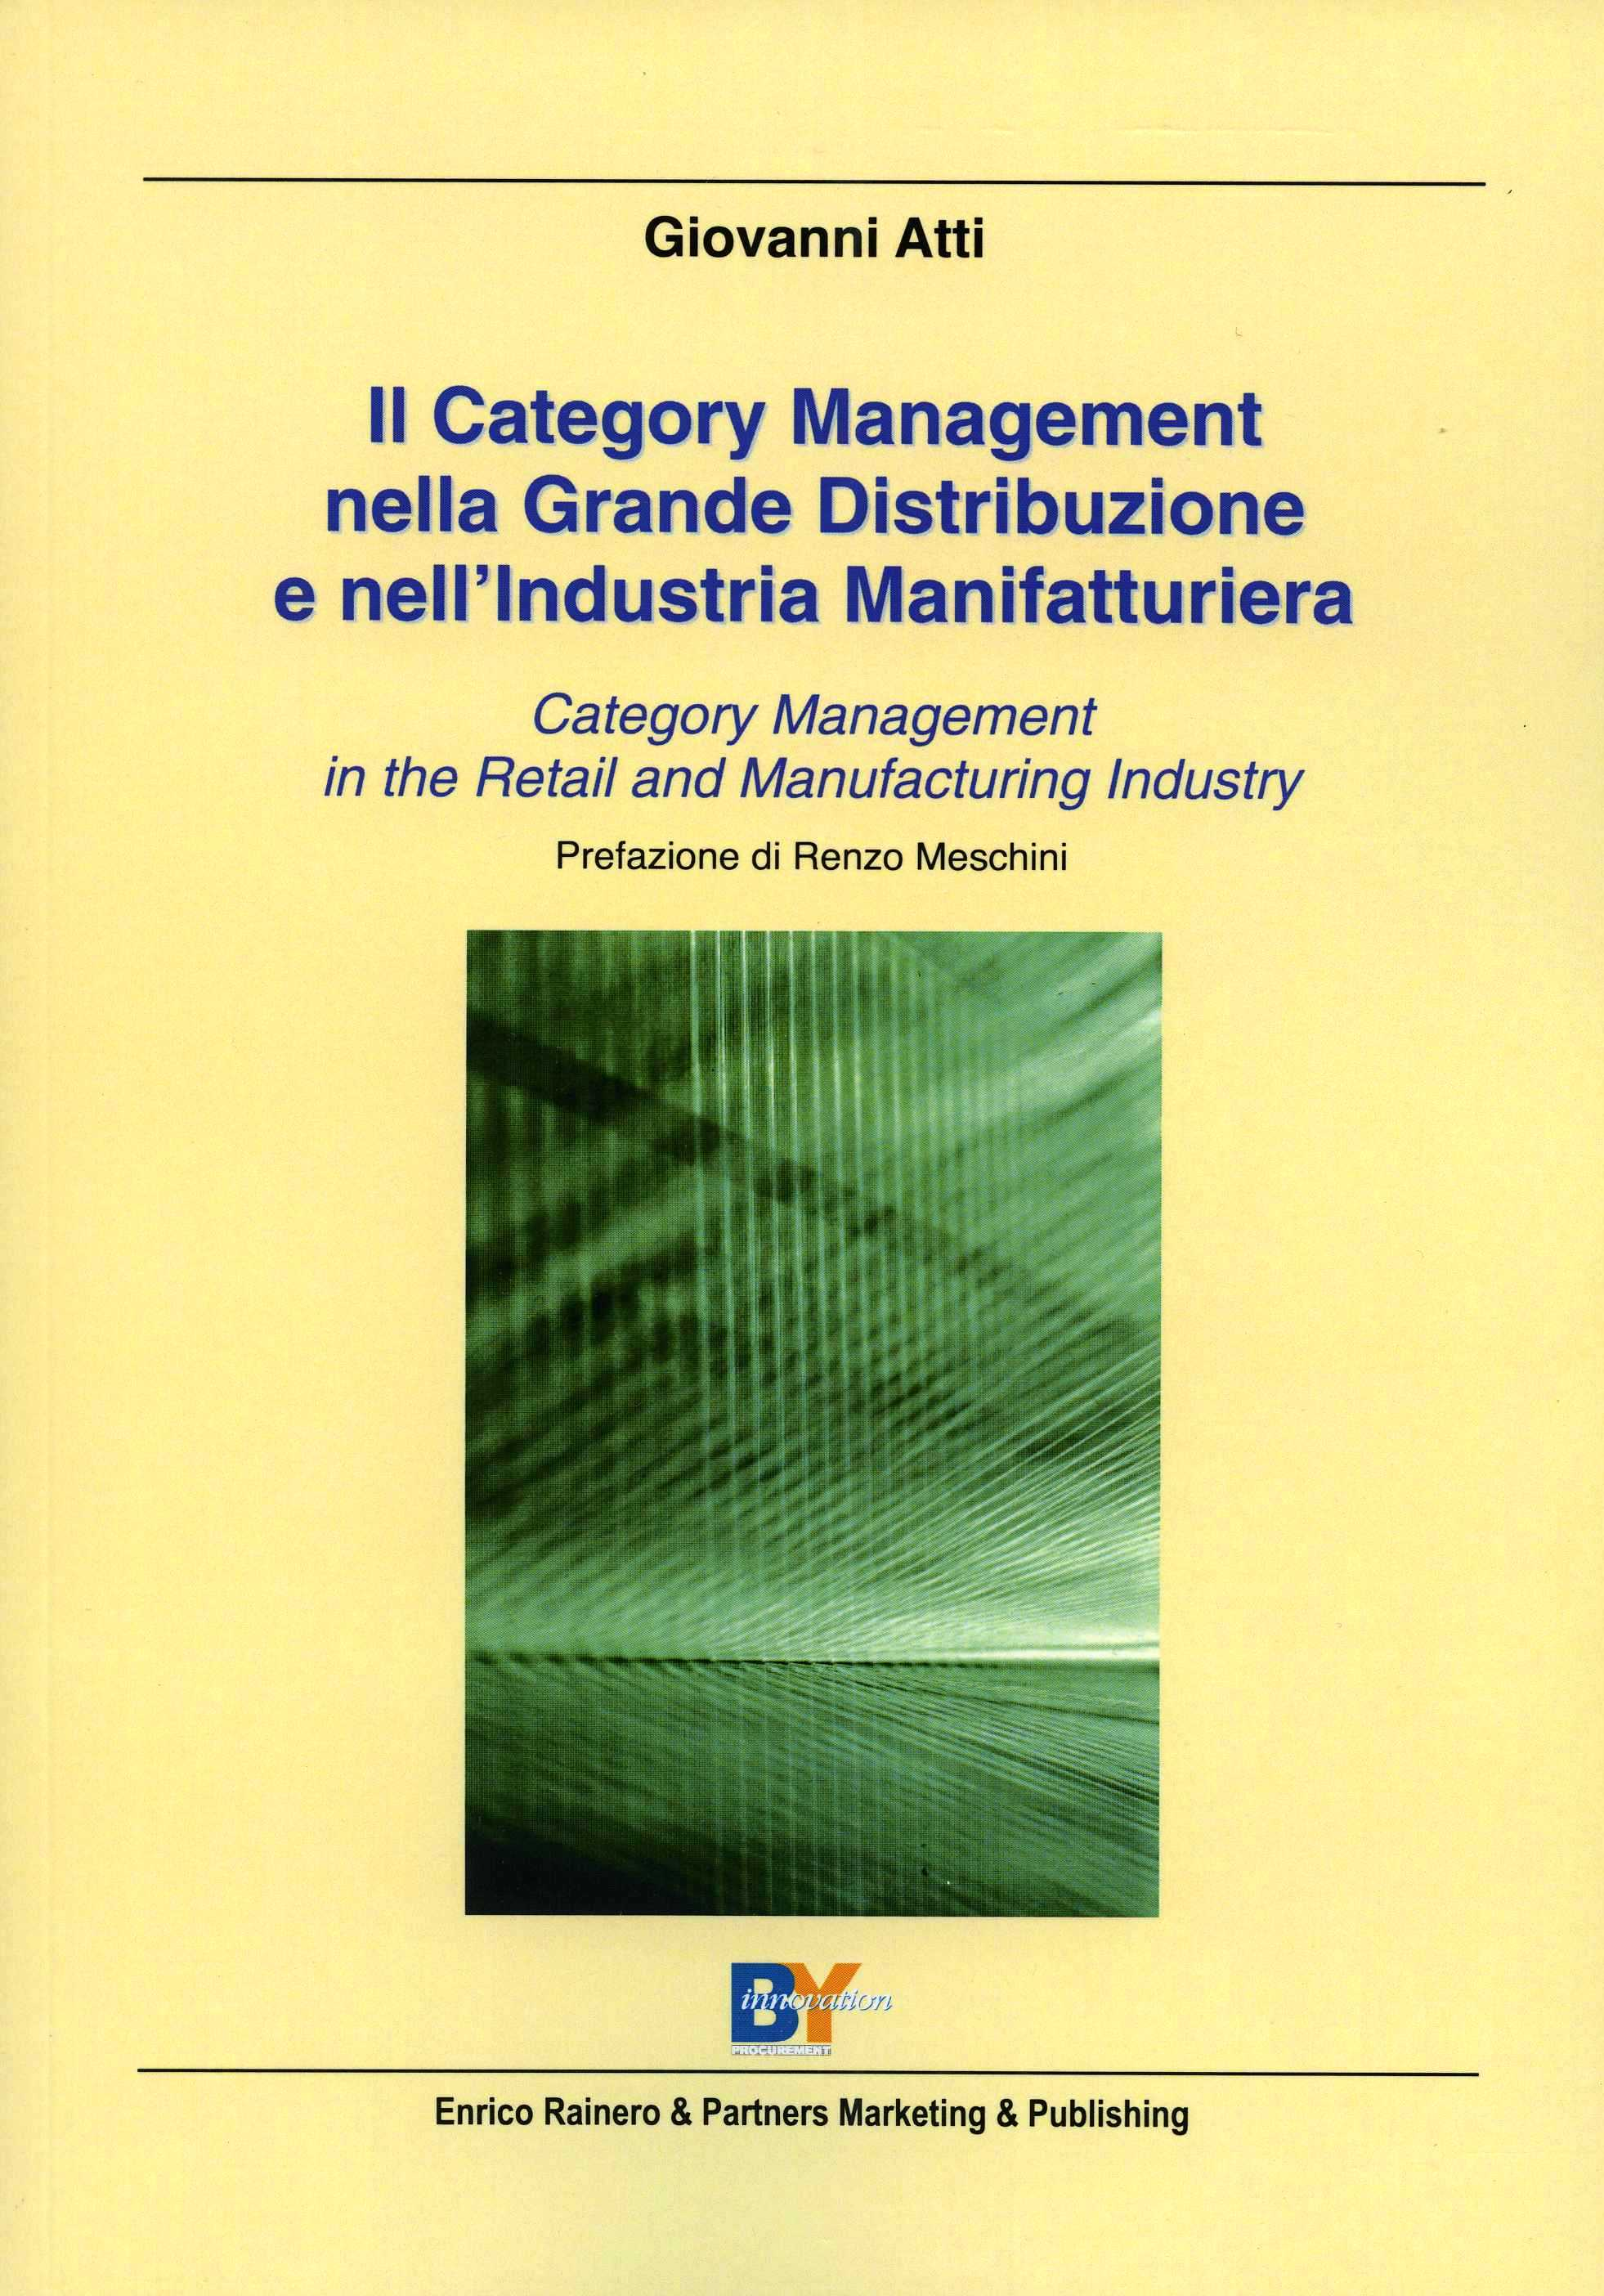 Category Management in the Retail and Manufacturing Industry